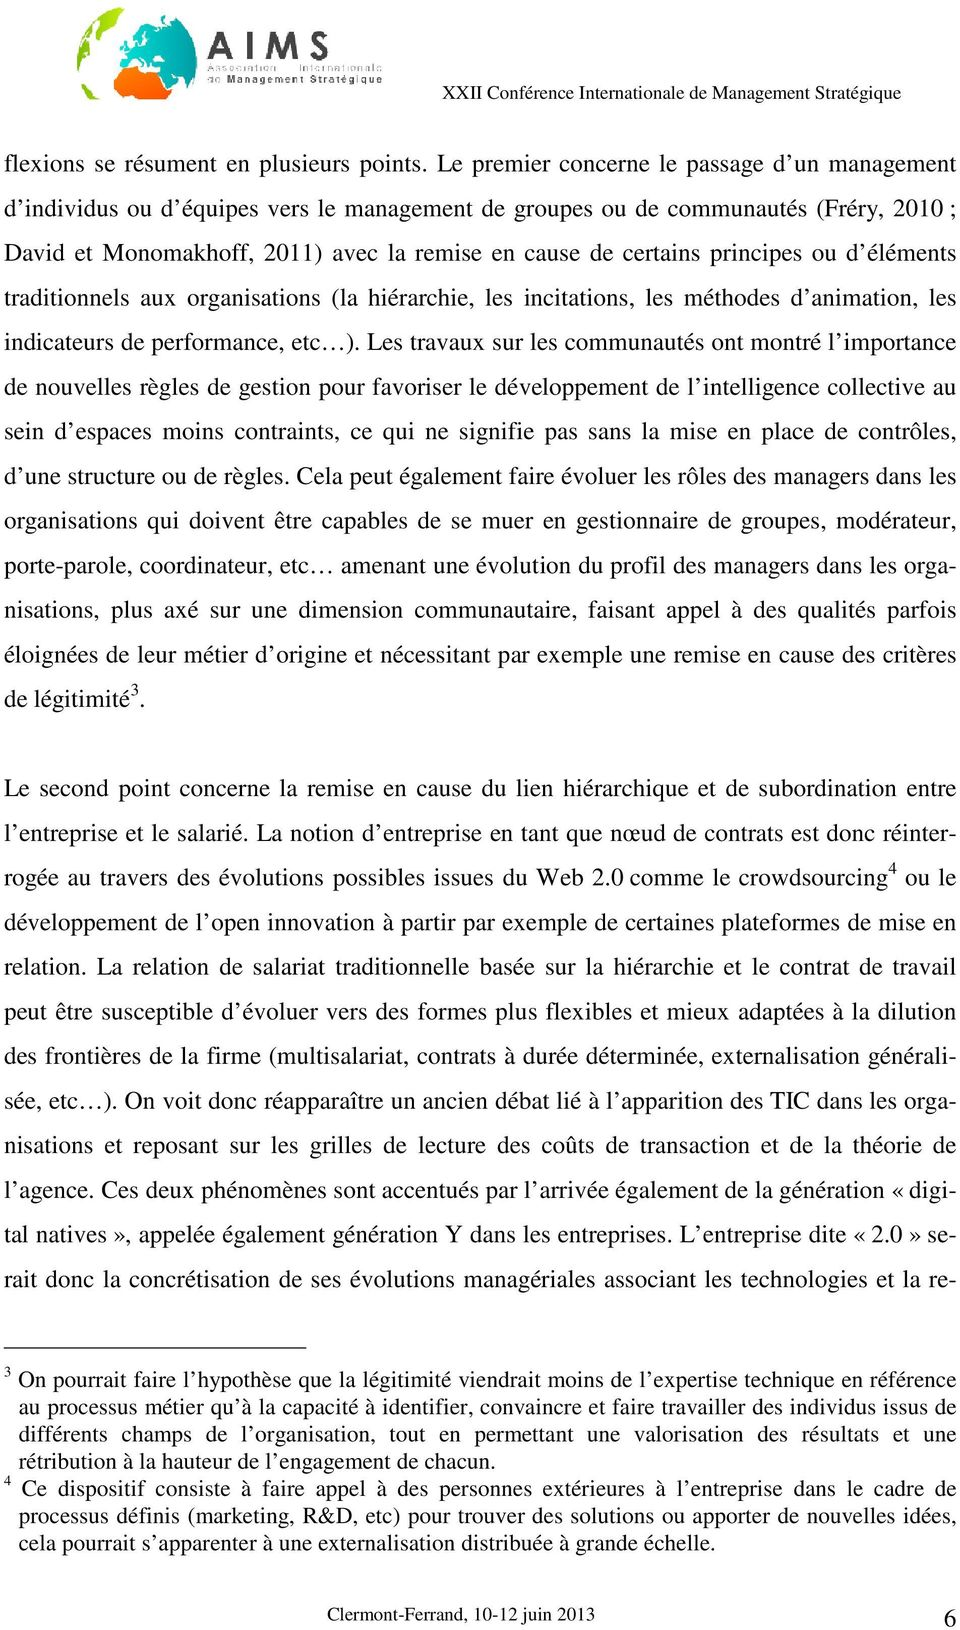 principes ou d éléments traditionnels aux organisations (la hiérarchie, les incitations, les méthodes d animation, les indicateurs de performance, etc ).